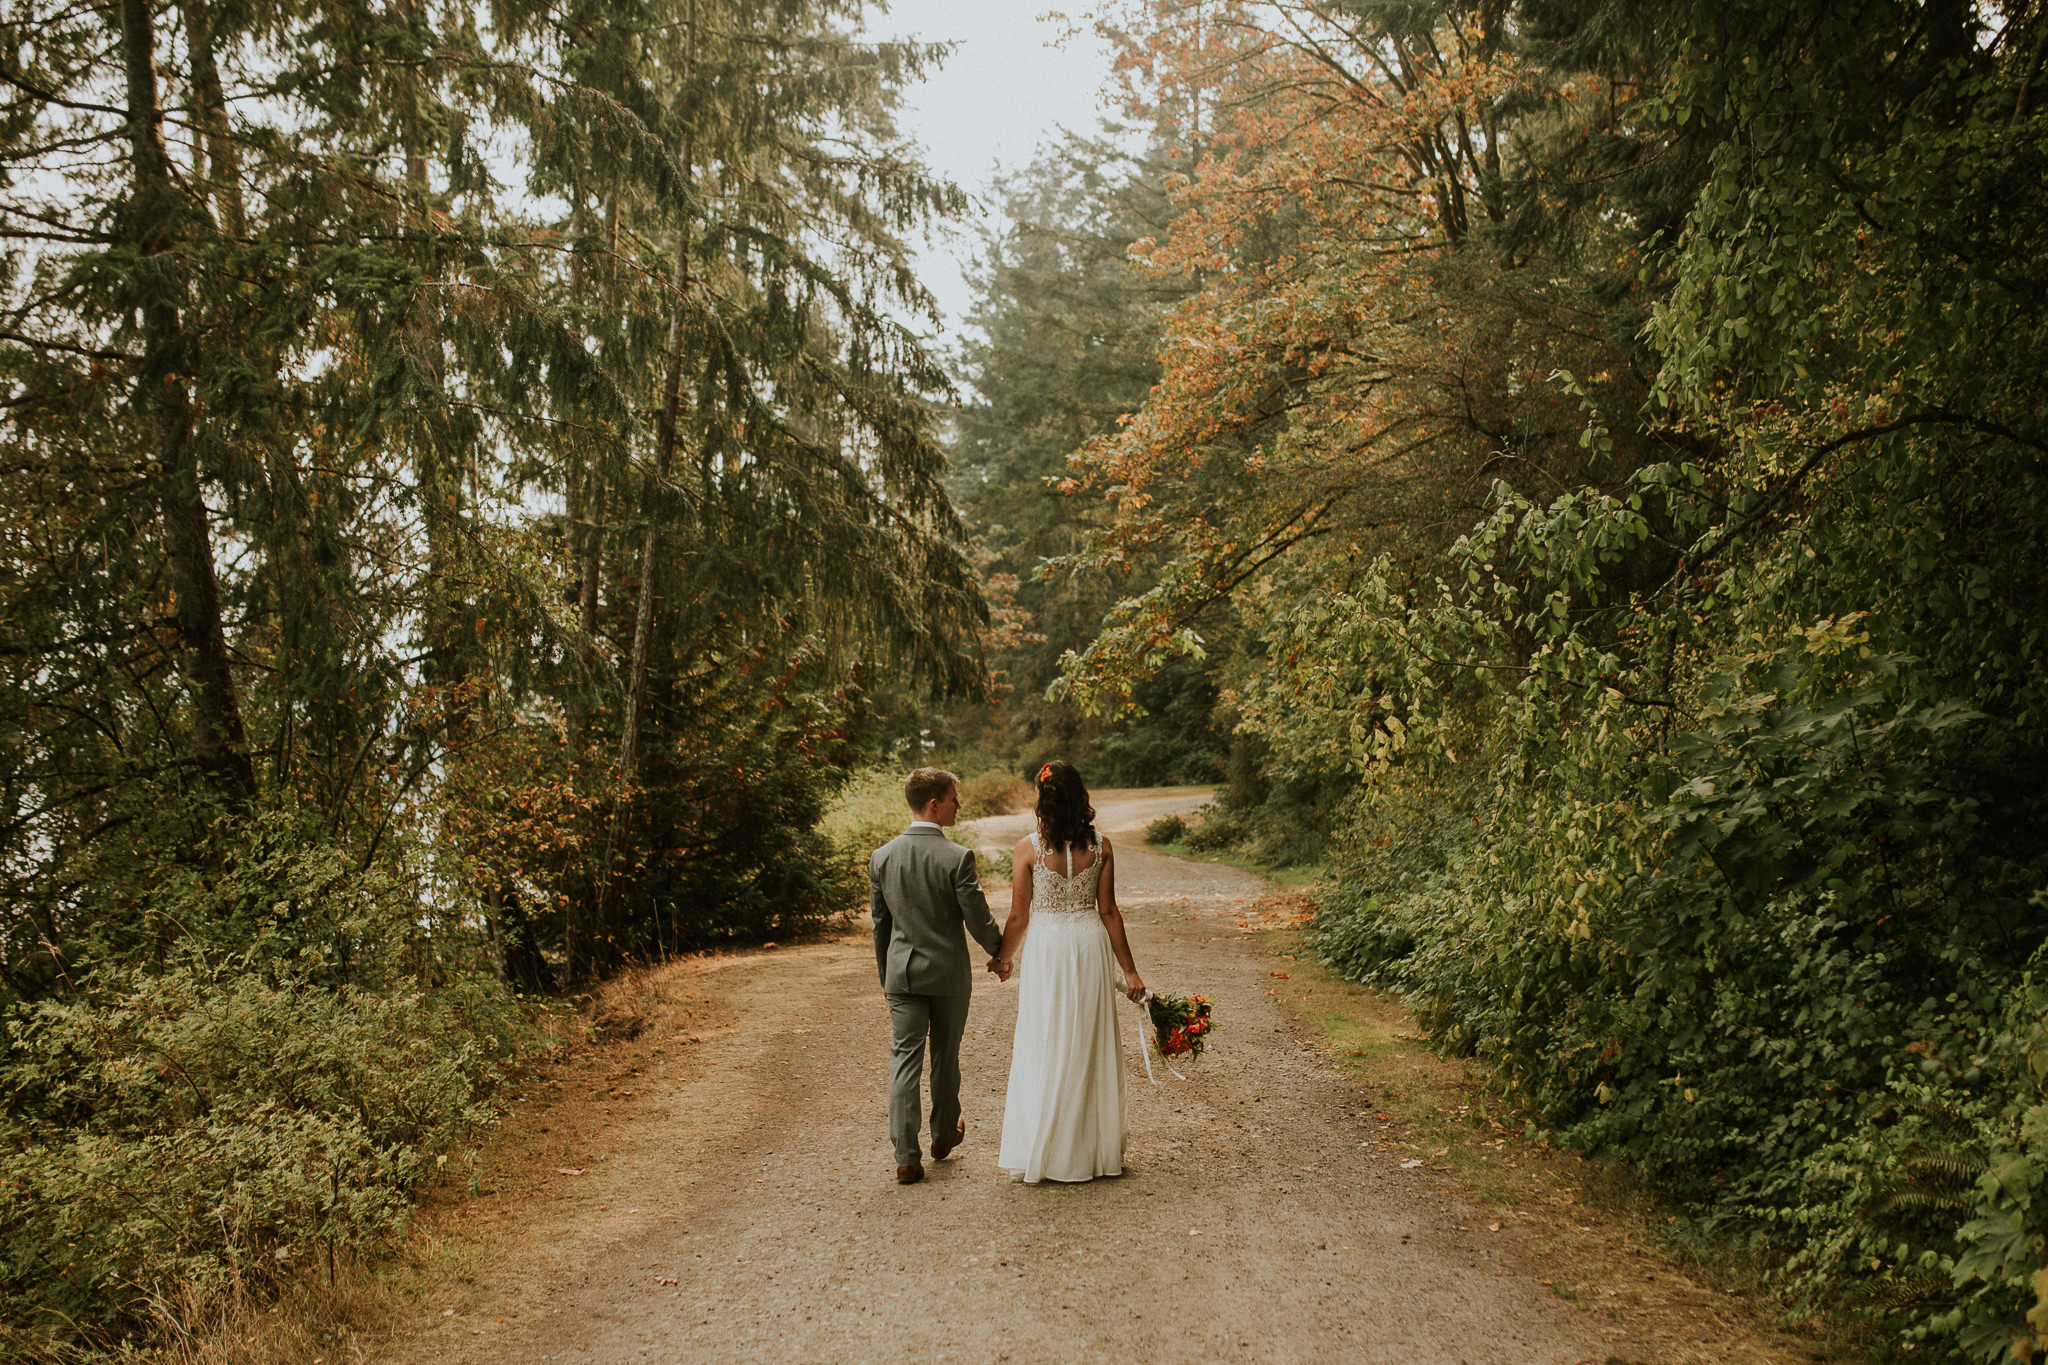 Port-Orchard-Manchester-Park-elopement-Bride-And-Groom-95.jpg